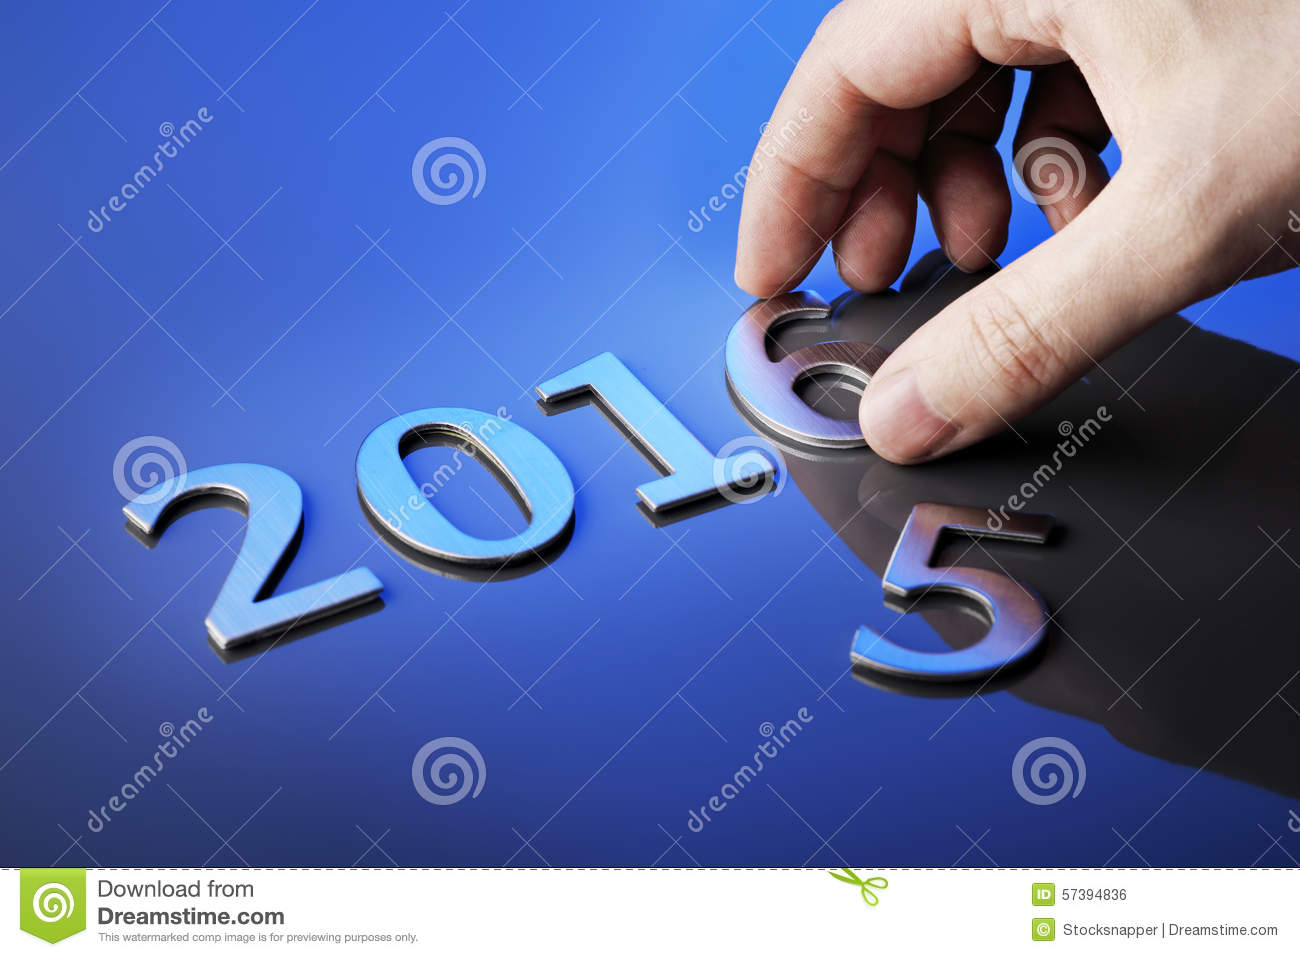 New year 2016 stock photo image 58693644 - Welcome 2016 Royalty Free Stock Image